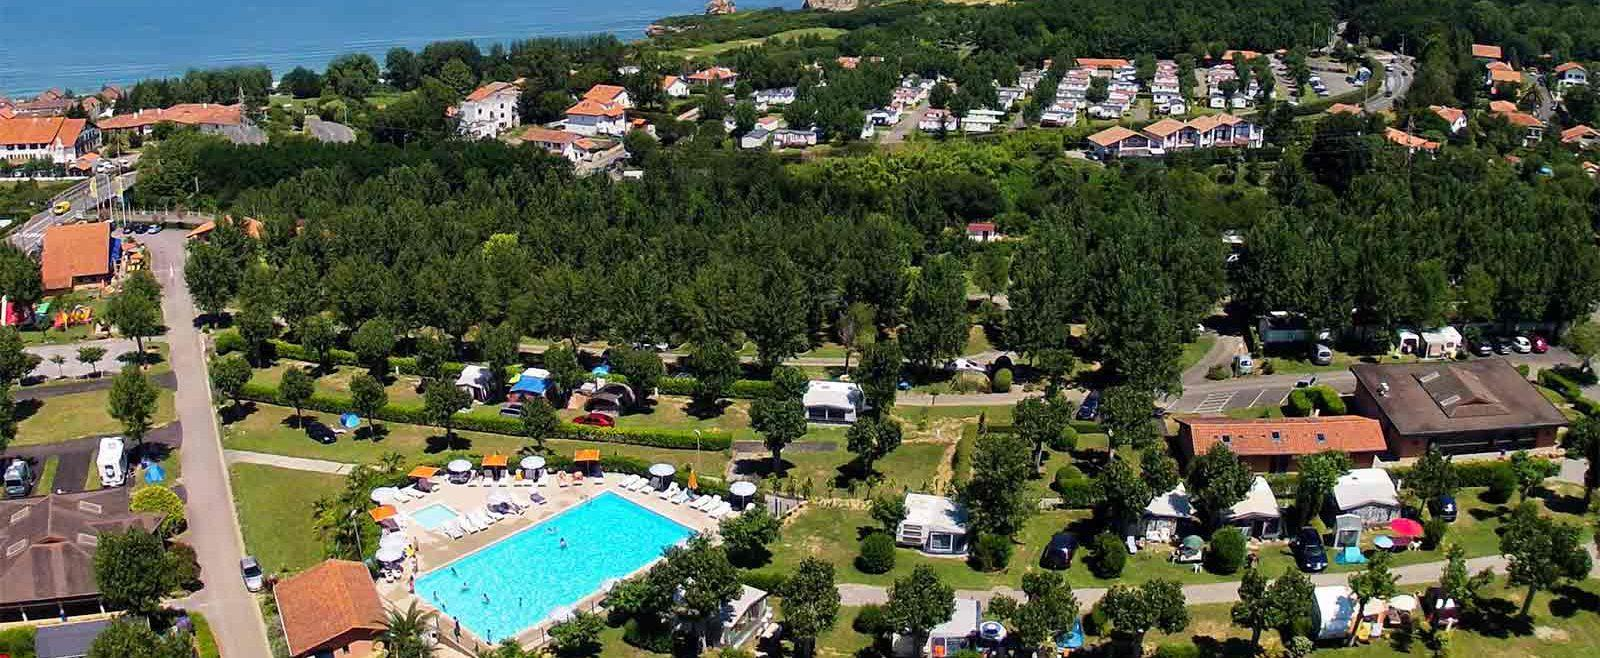 Establishment Camping AMETZA - HENDAYE-PLAGE